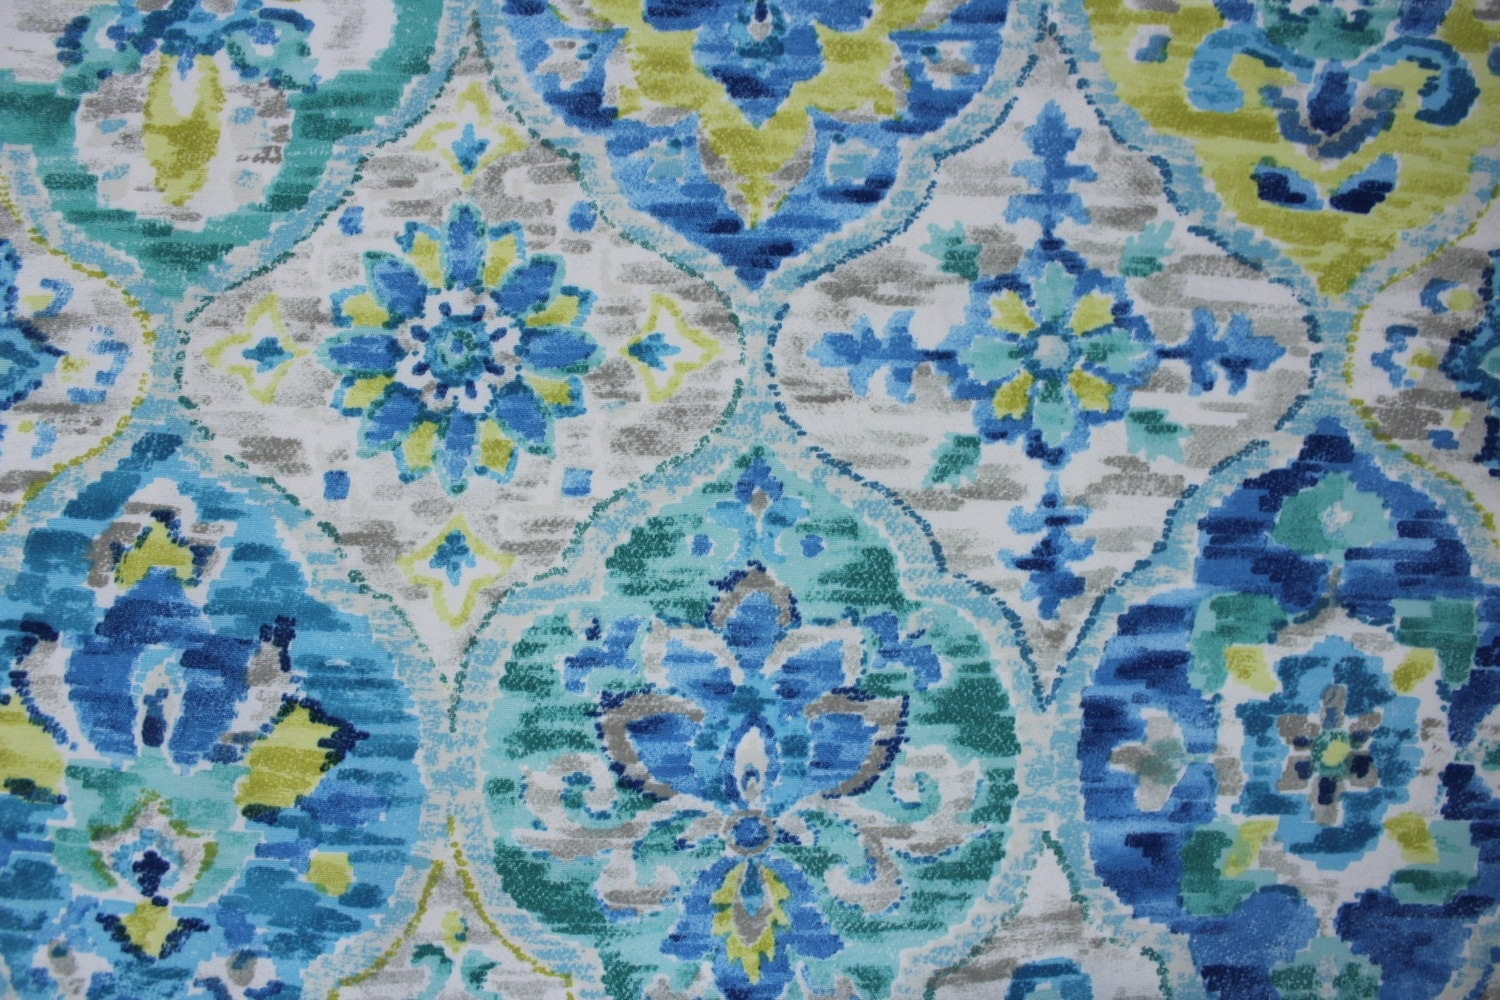 blue green yellow grey ikat fabric by the yard 052. Black Bedroom Furniture Sets. Home Design Ideas